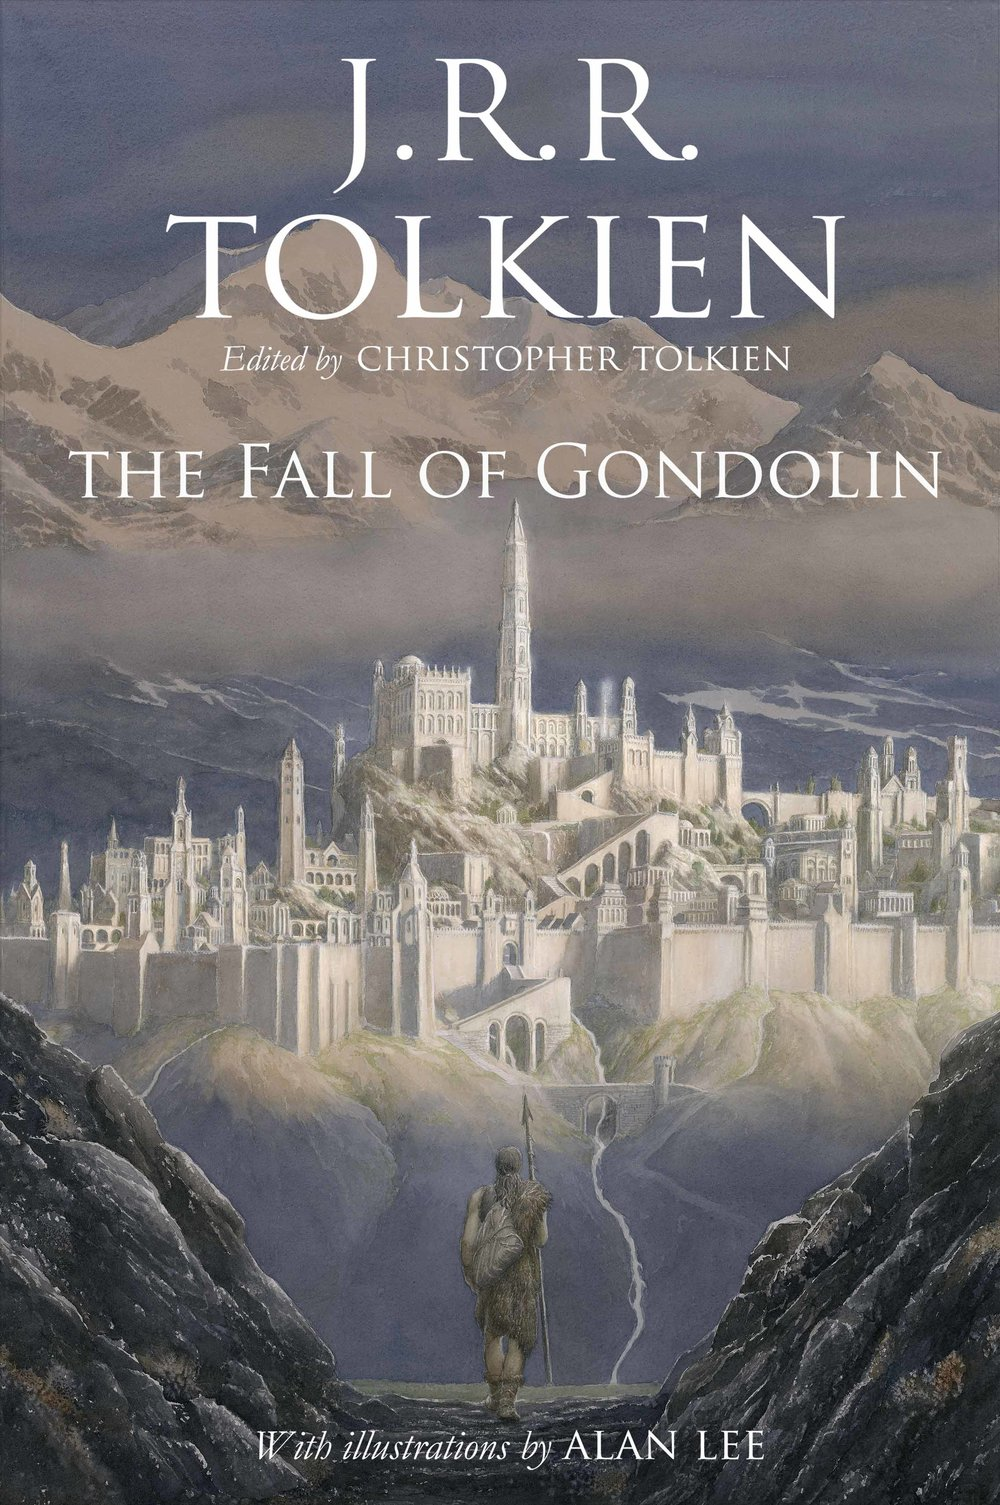 jrr-tolkien-has-a-new-middle-earth-book-coming-out-soon-called-the-fall-of-gondolin1